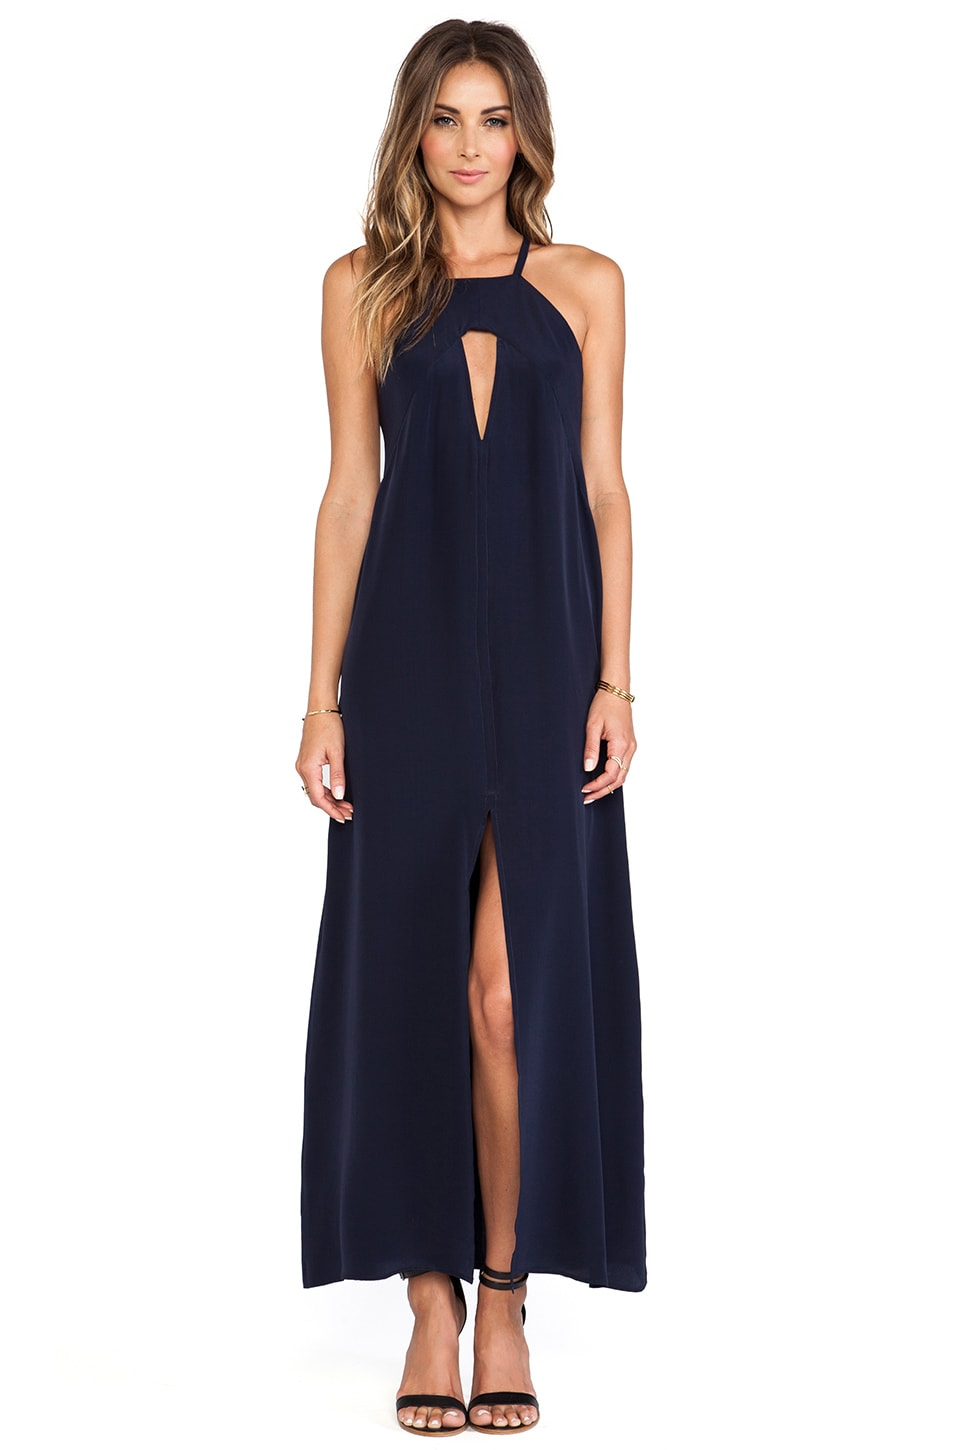 Helena Quinn Triangle Cut Out Maxi Dress in Navy